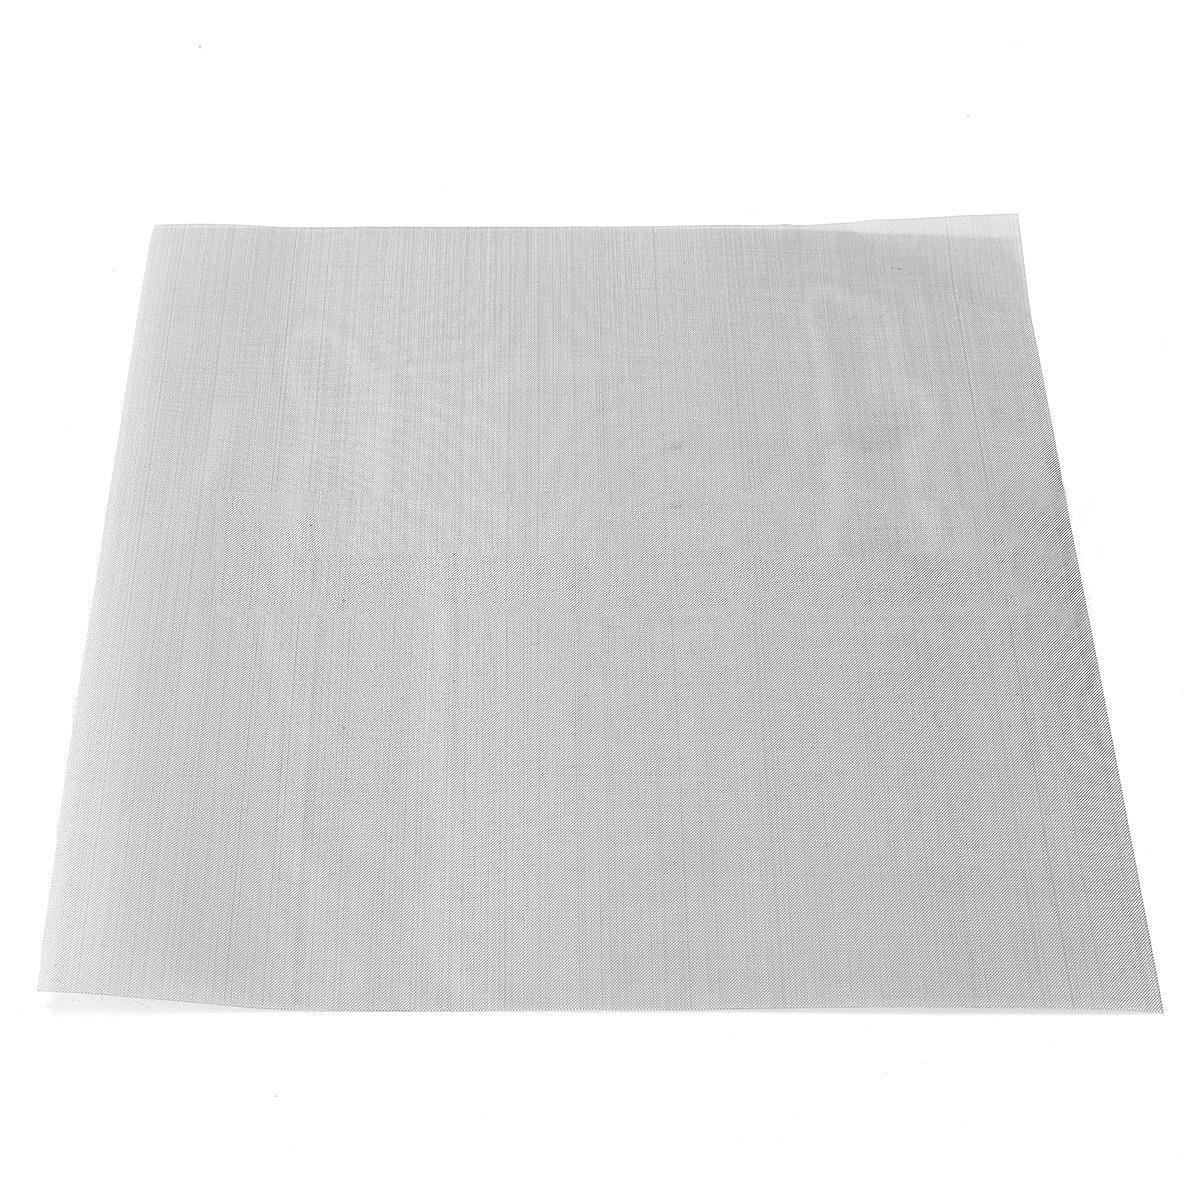 1pc Non-toxic 304 Stainless Steel Woven Wire 60 Mesh Filtration Cloth Screen 30x30cm For Cooking Nets 1pc 60 mesh woven wire cloth screen filtration 304 stainless steel 30x30cm with high temperature resistance